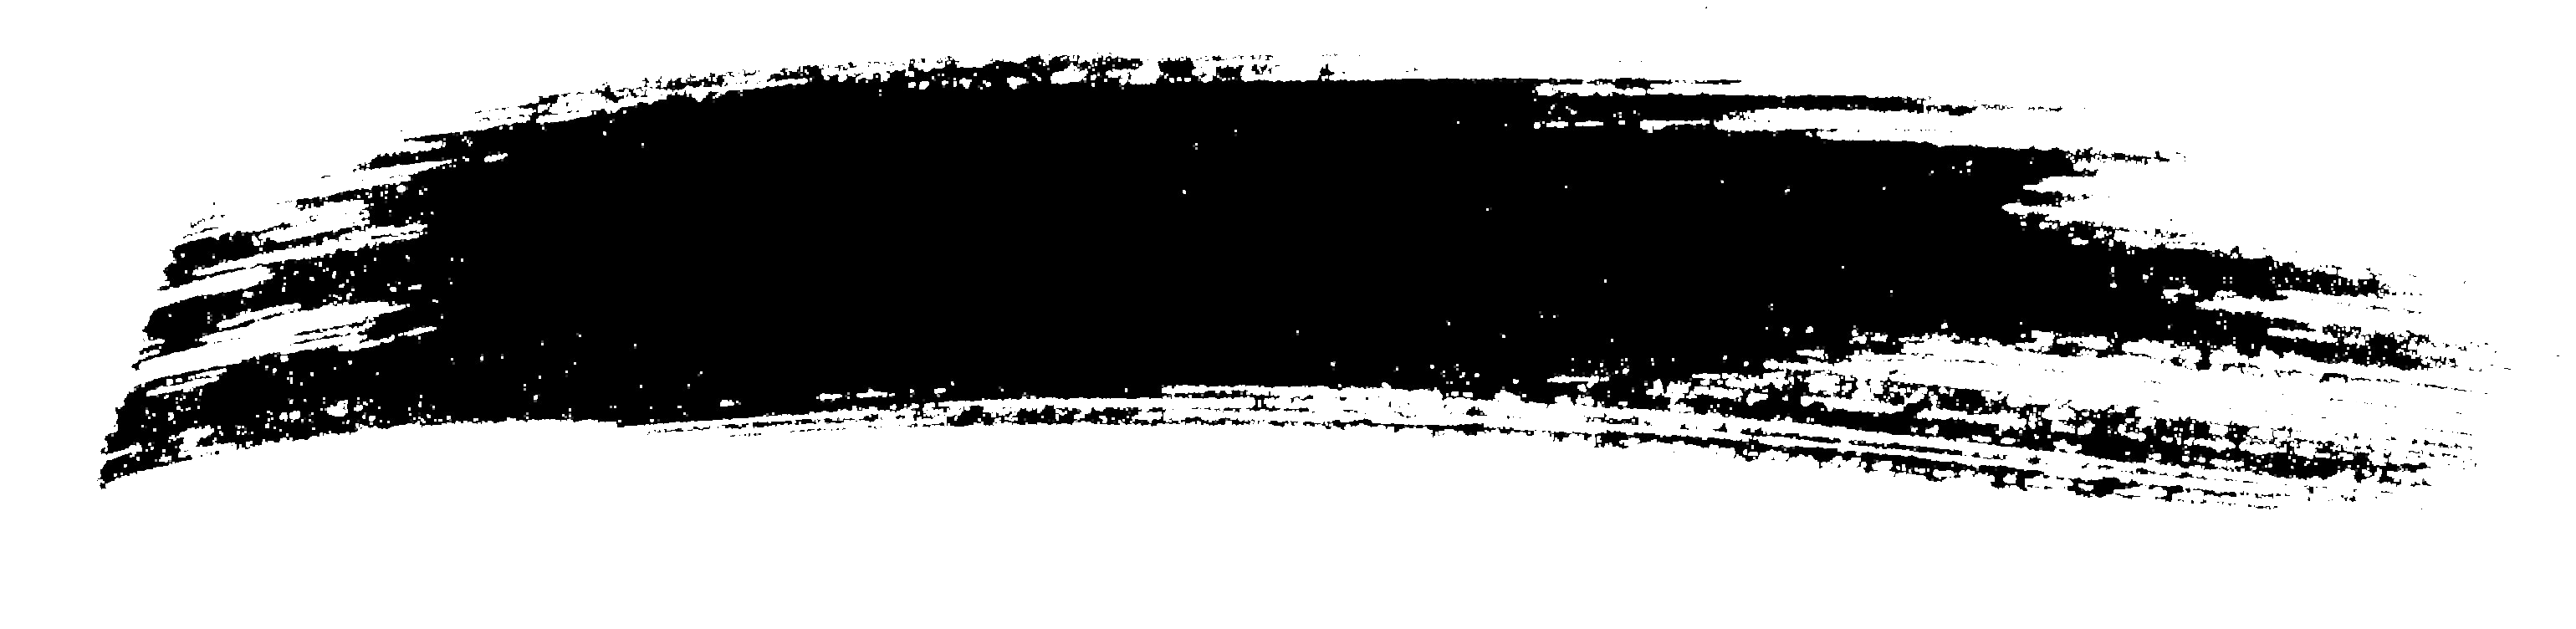 black brush stroke png